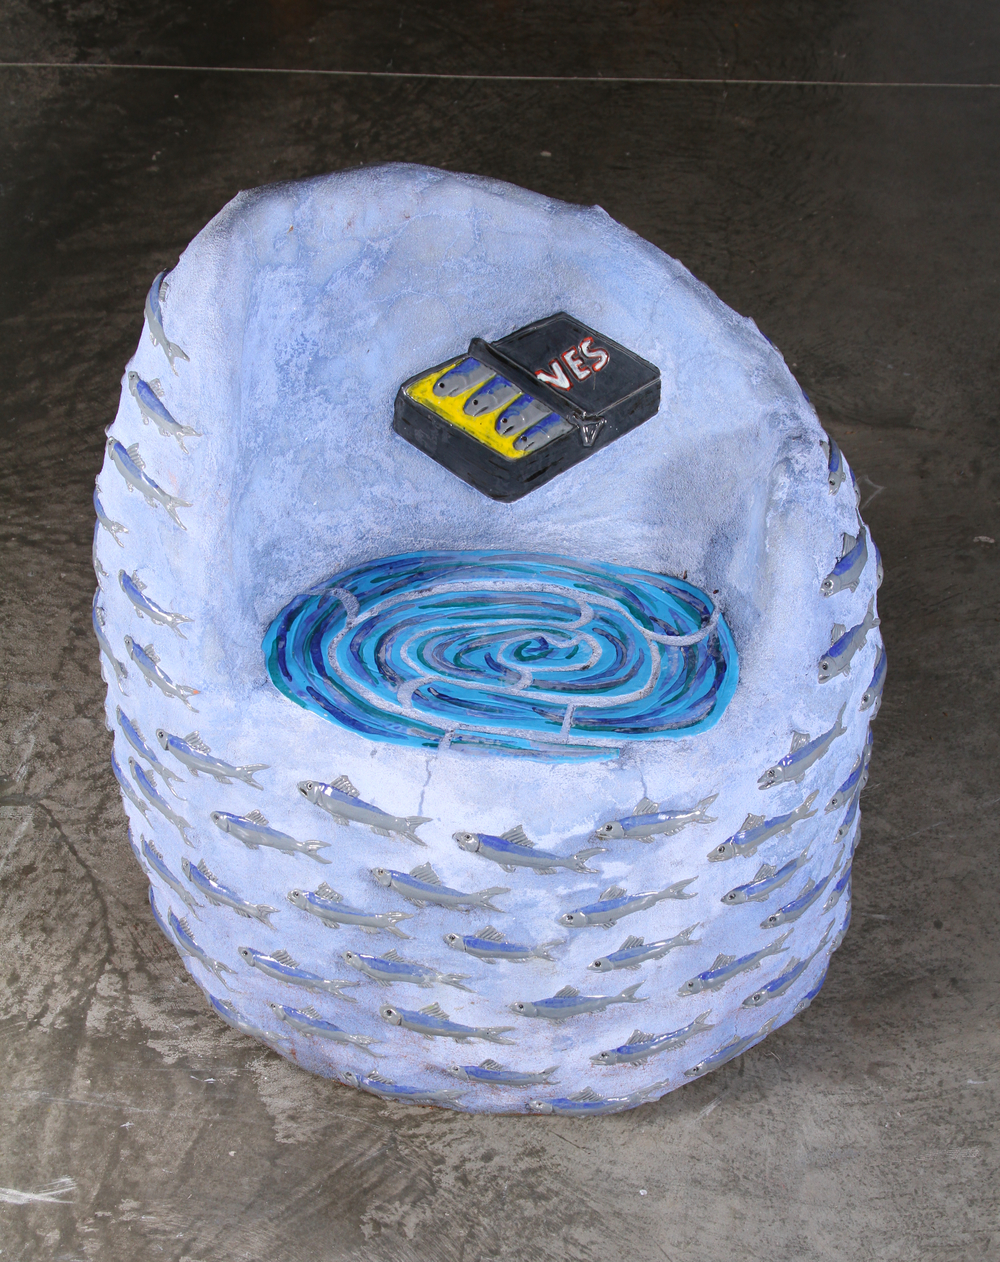 """Sardine Seat"" 37"" x 36"" x 28"" Ceramic tile and Cement 2010"